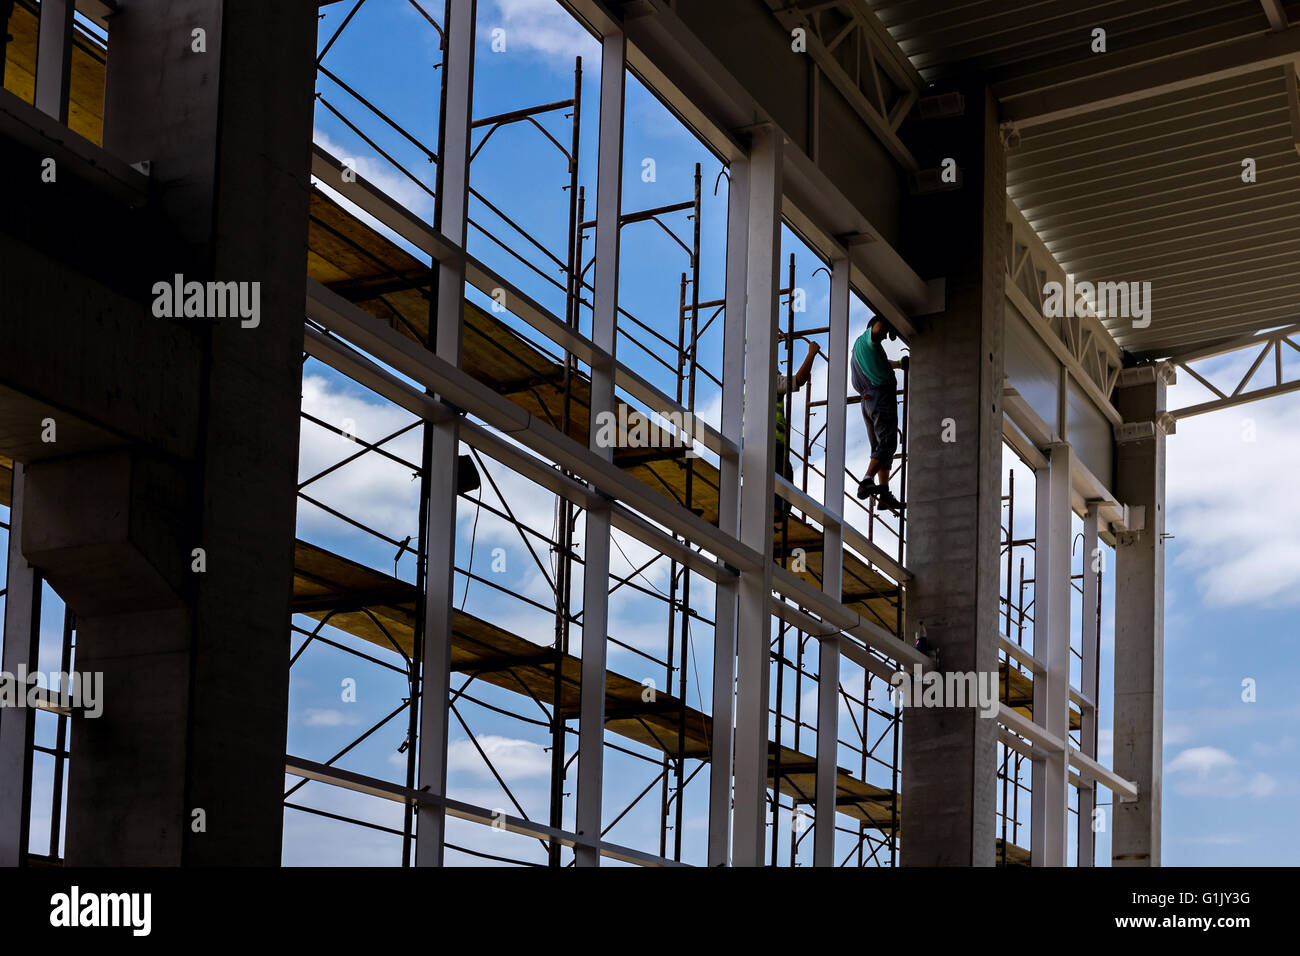 Silhouetted industrial shot with scaffold against blue sky, people are working. - Stock Image